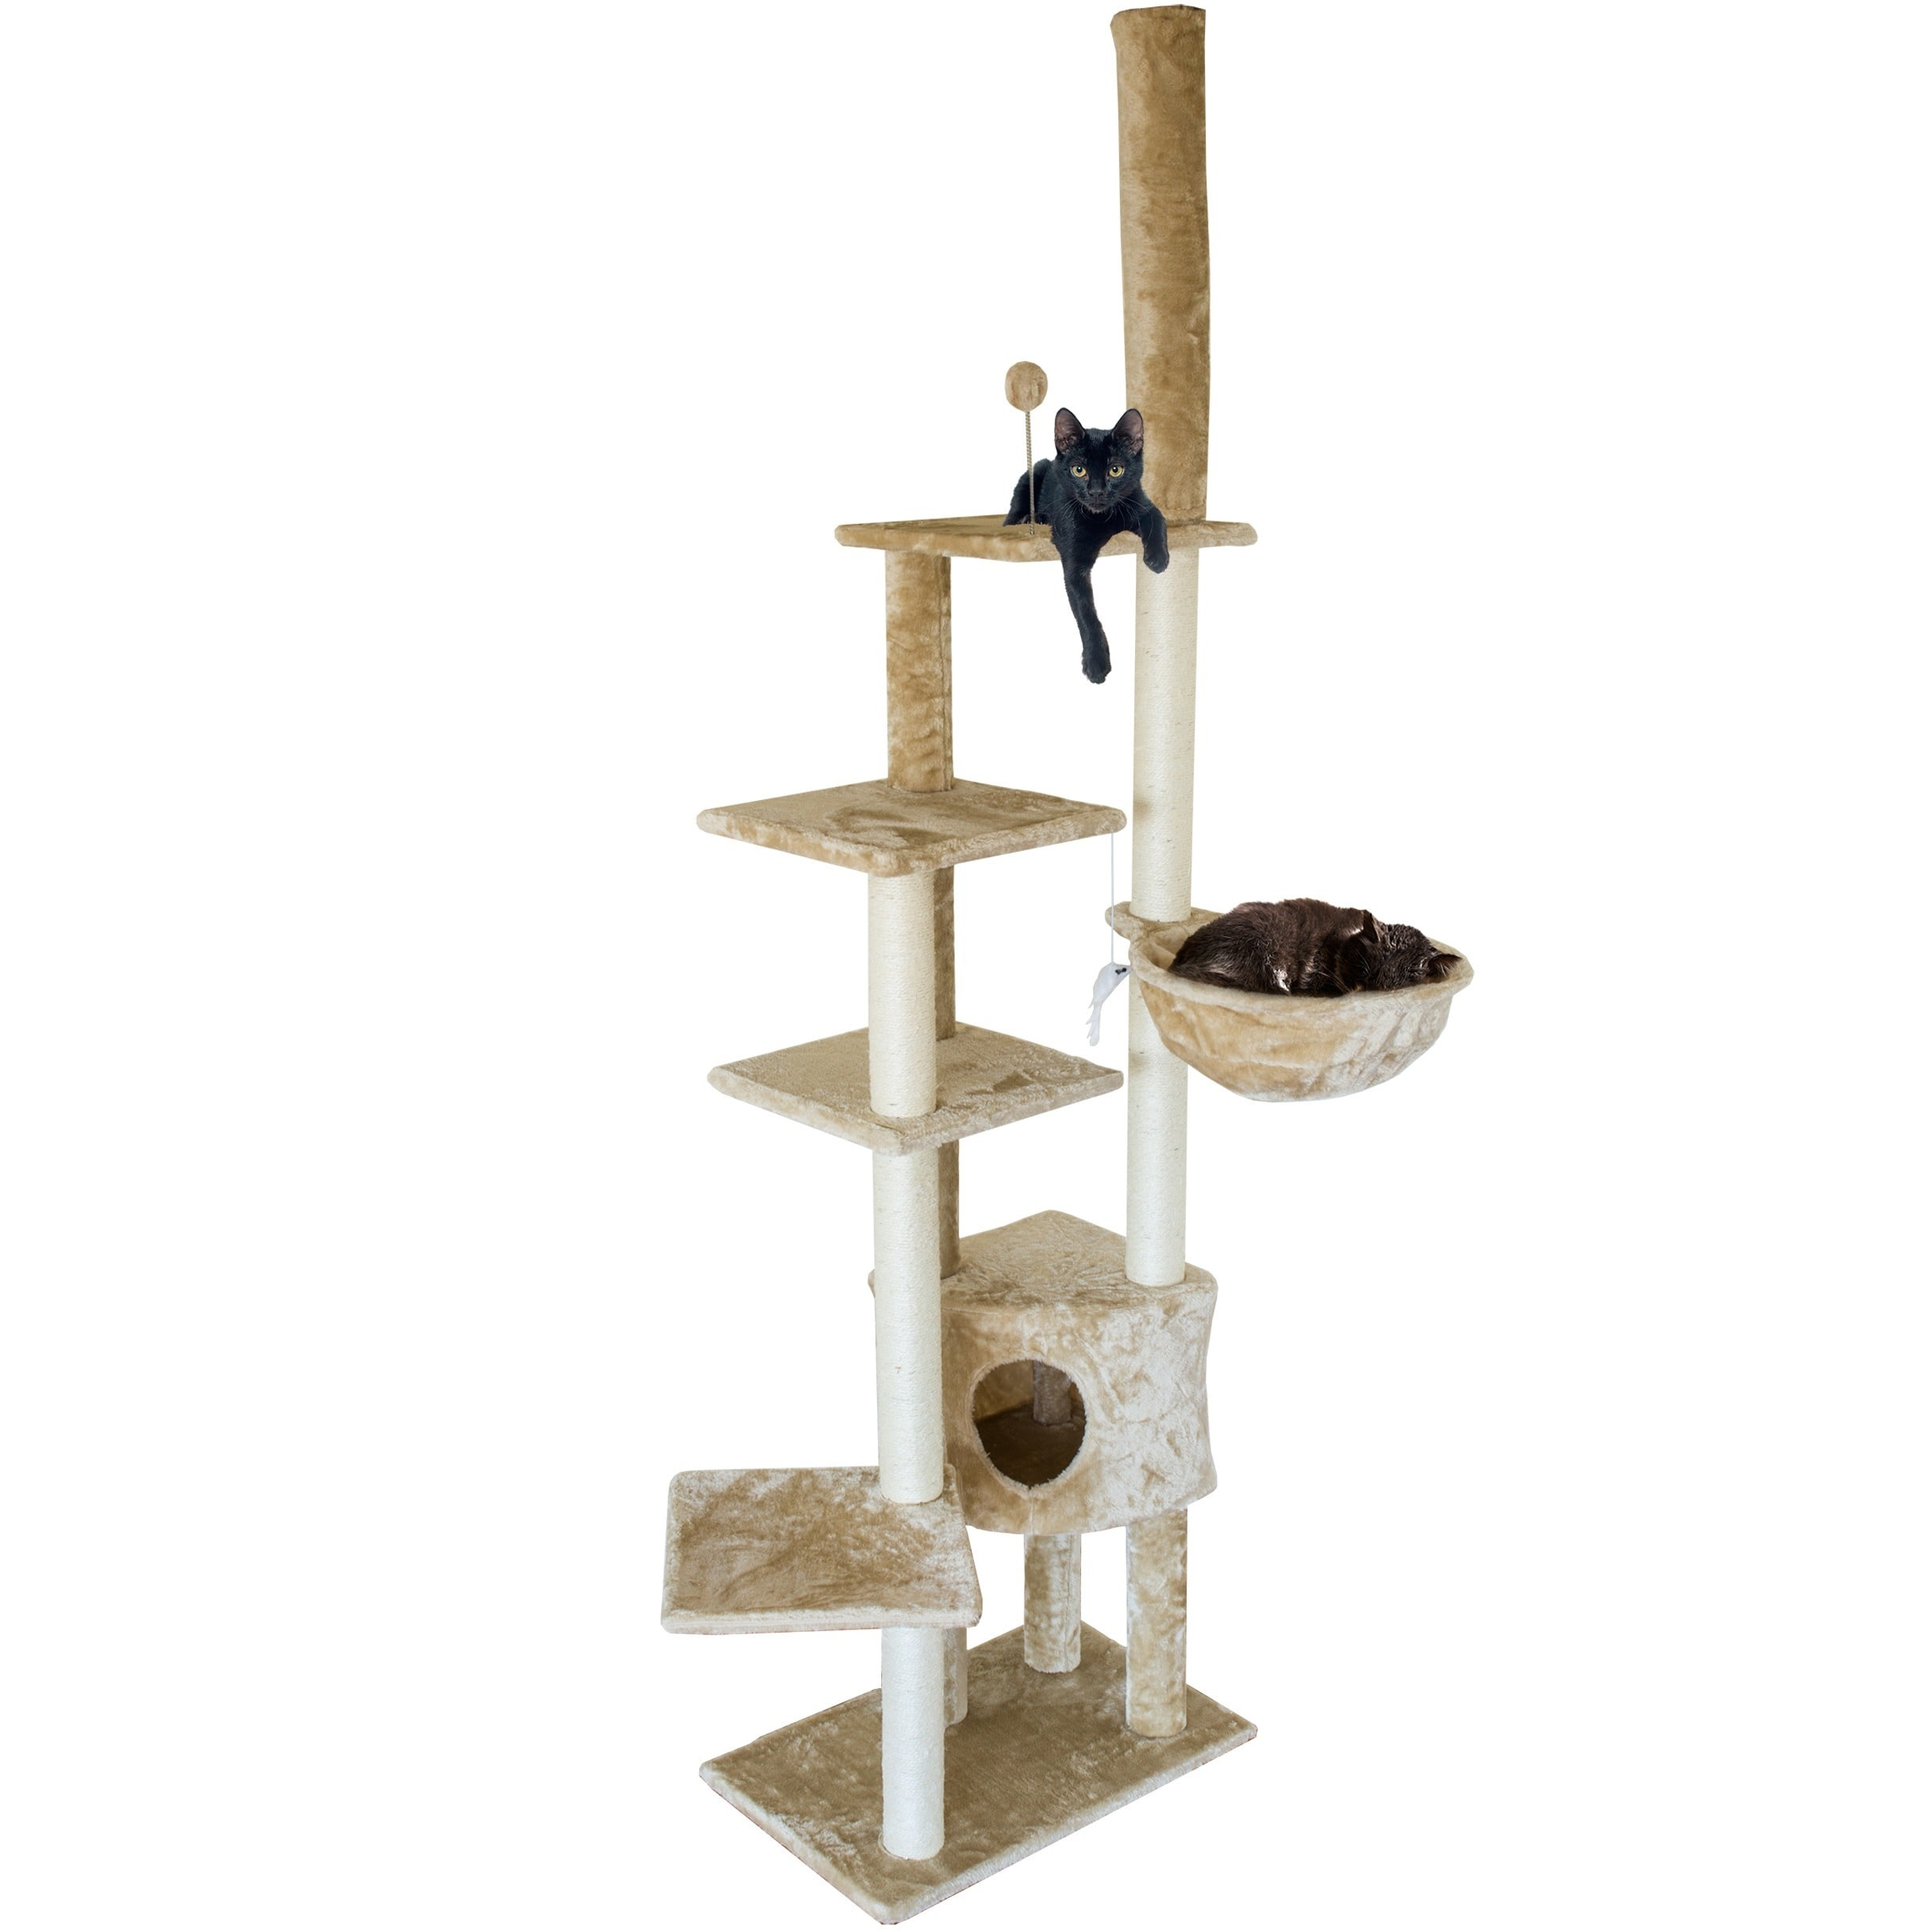 furhaven skyscraper cat tower cat tree house with hammock   free shipping today   overstock     19134760 furhaven skyscraper cat tower cat tree house with hammock   free      rh   overstock